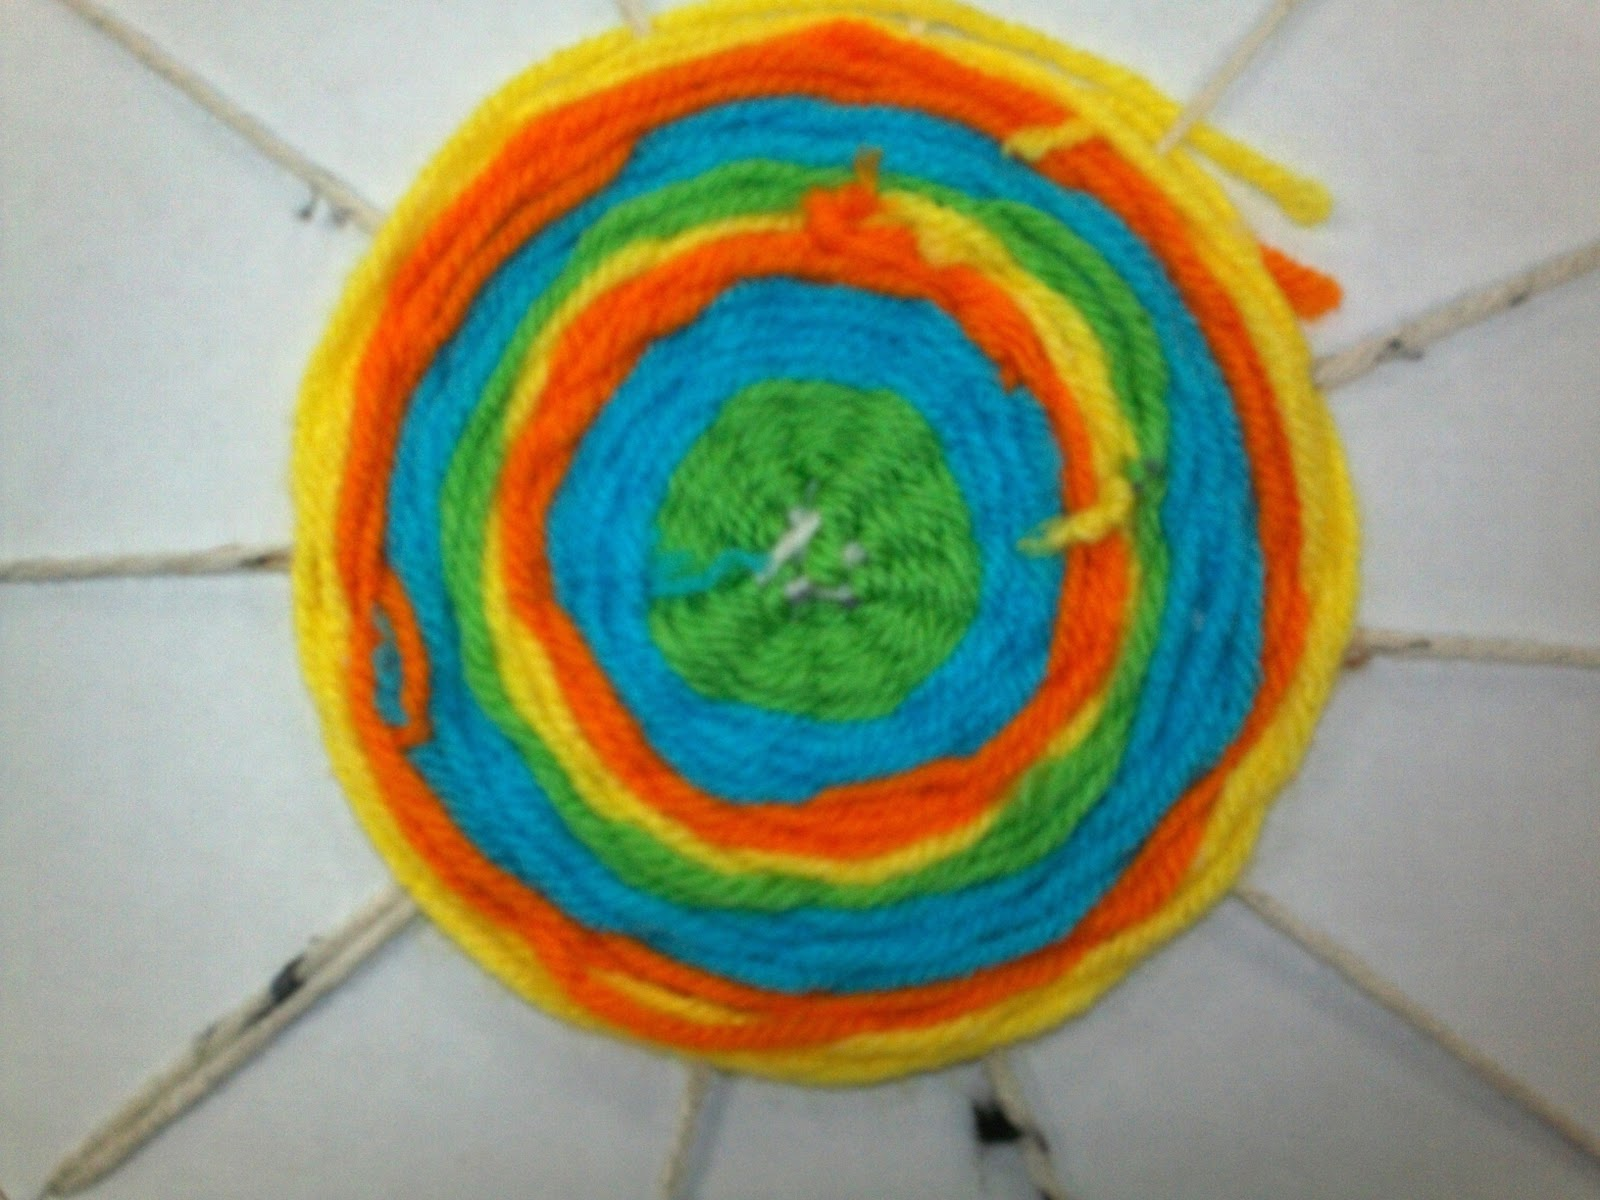 Art With Mr. E Welcome My New Best Circle Weaving Friend The Cheat Plate & Art With Mr. E: Welcome My New Best Circle Weaving Friend: The Cheat ...